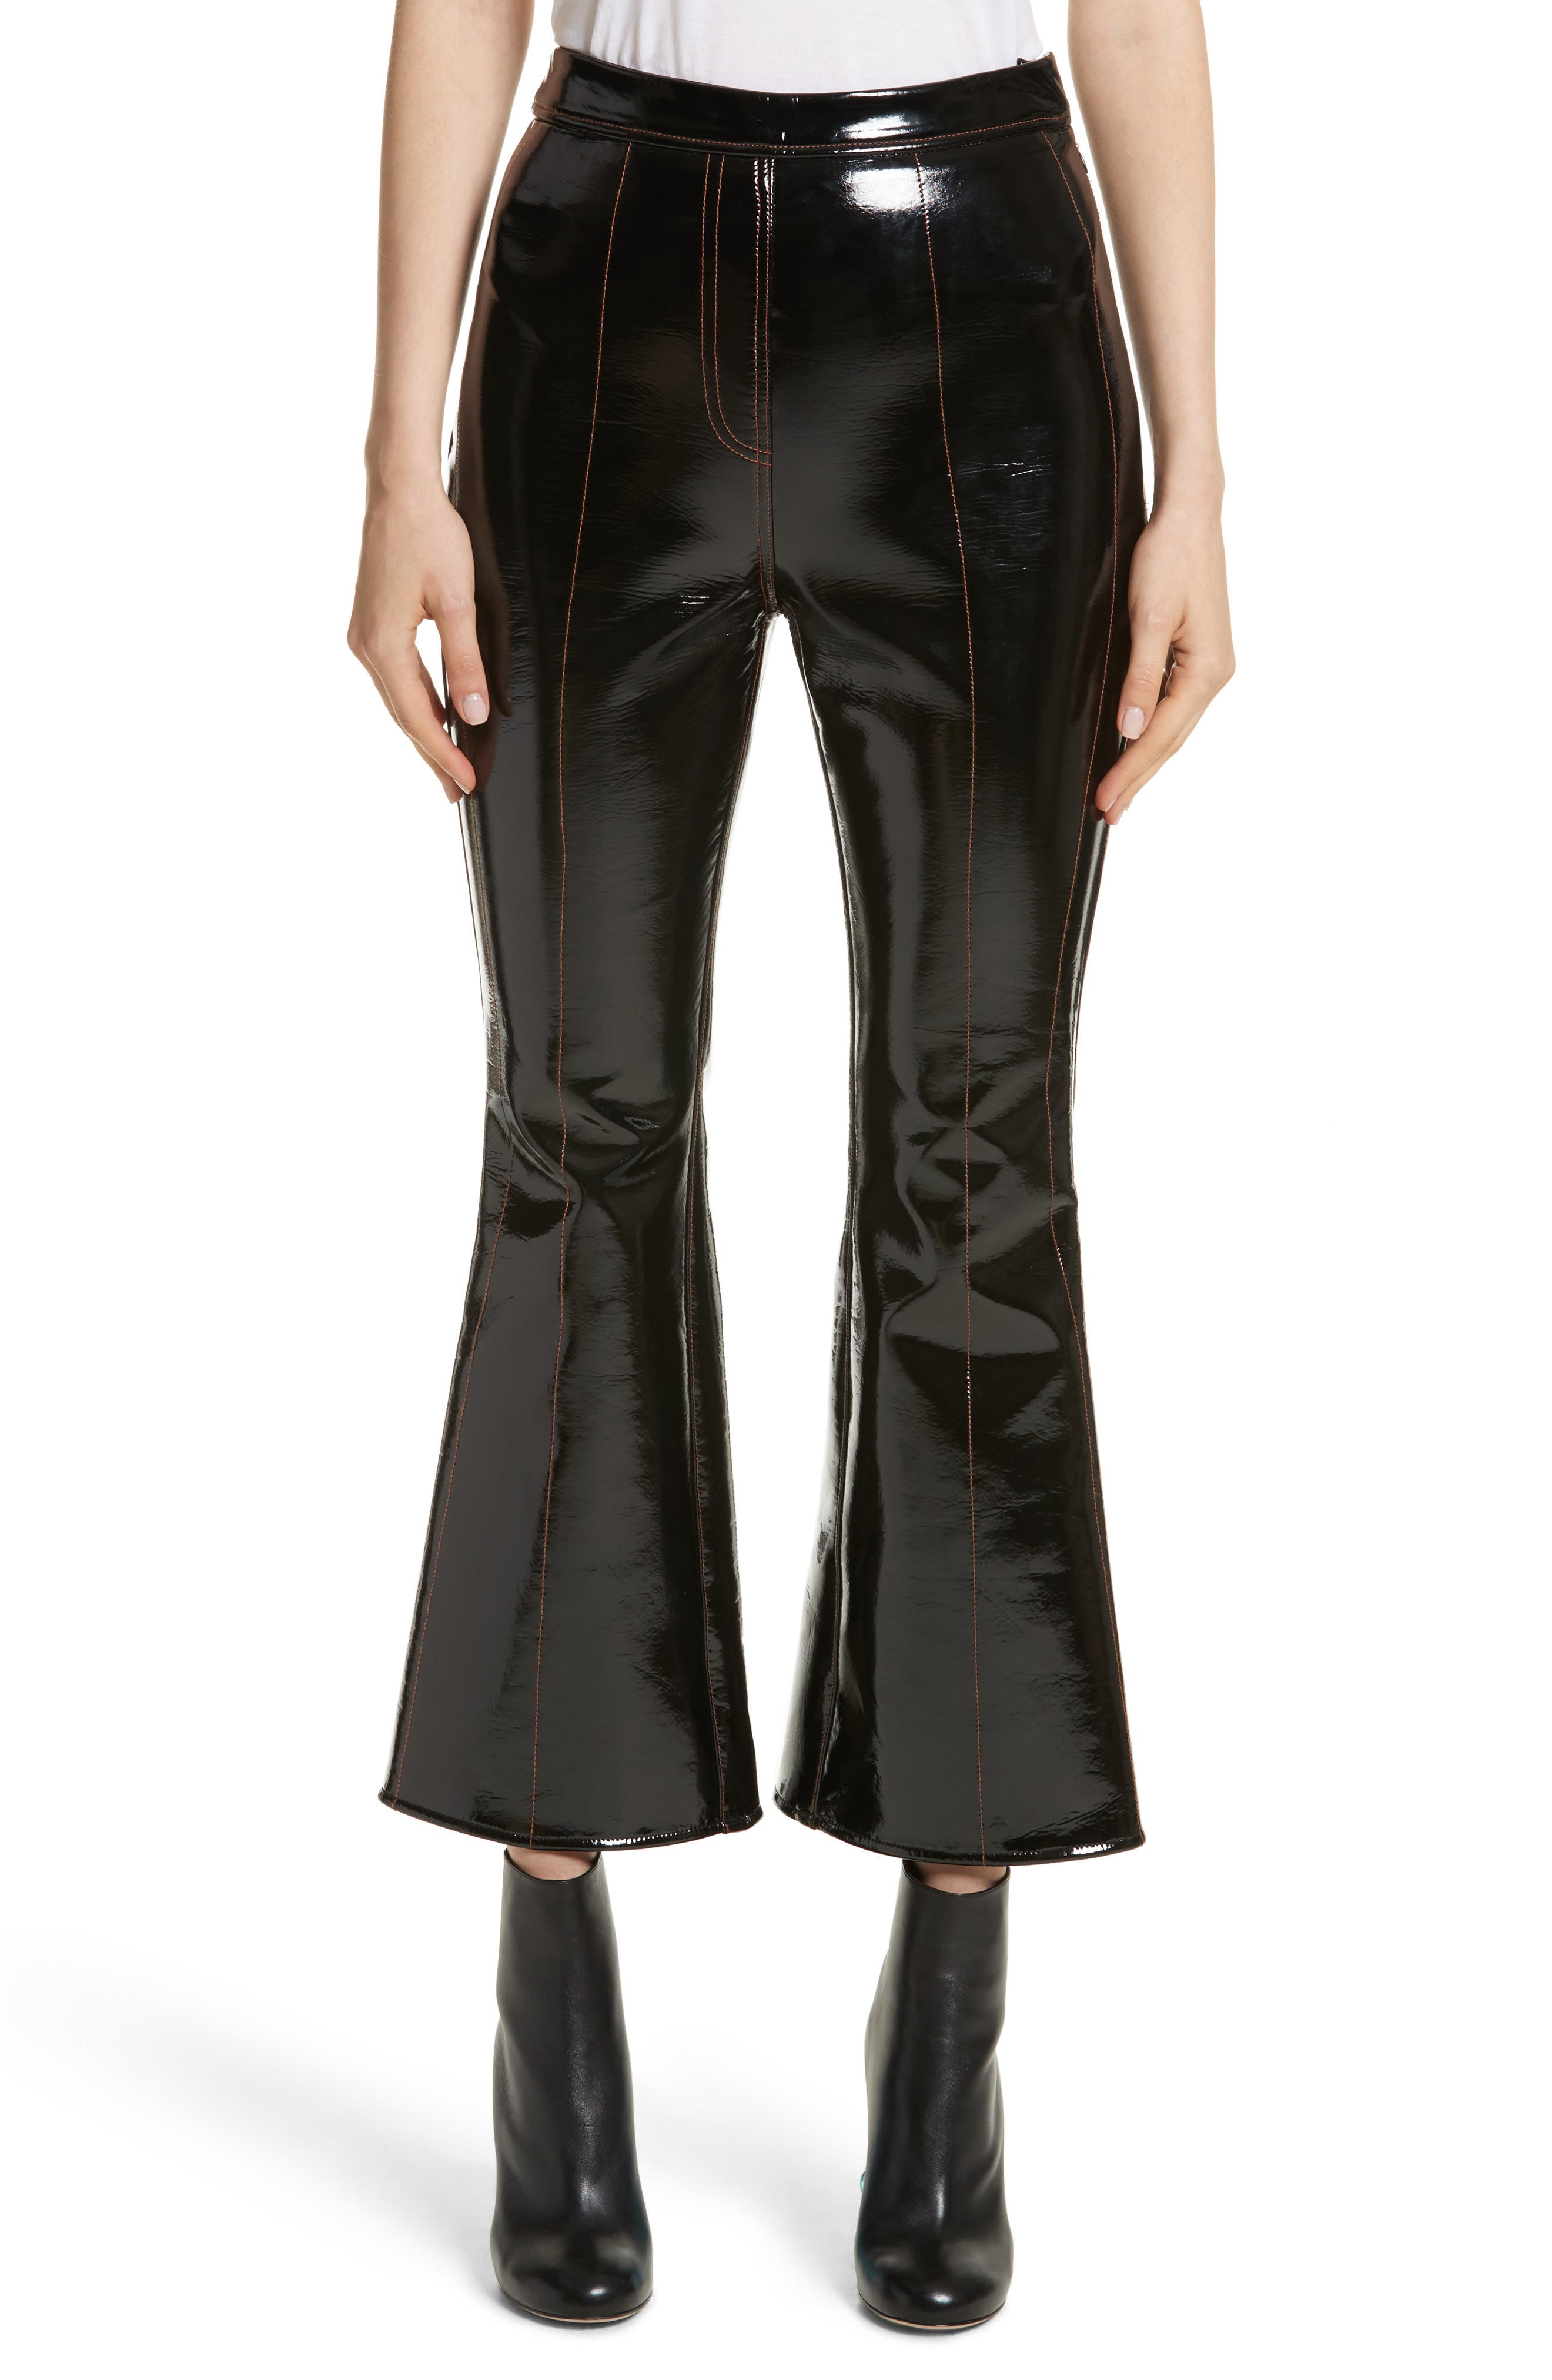 Outlaw Topstitched Crop Flare PVC Pants,                         Main,                         color, 001